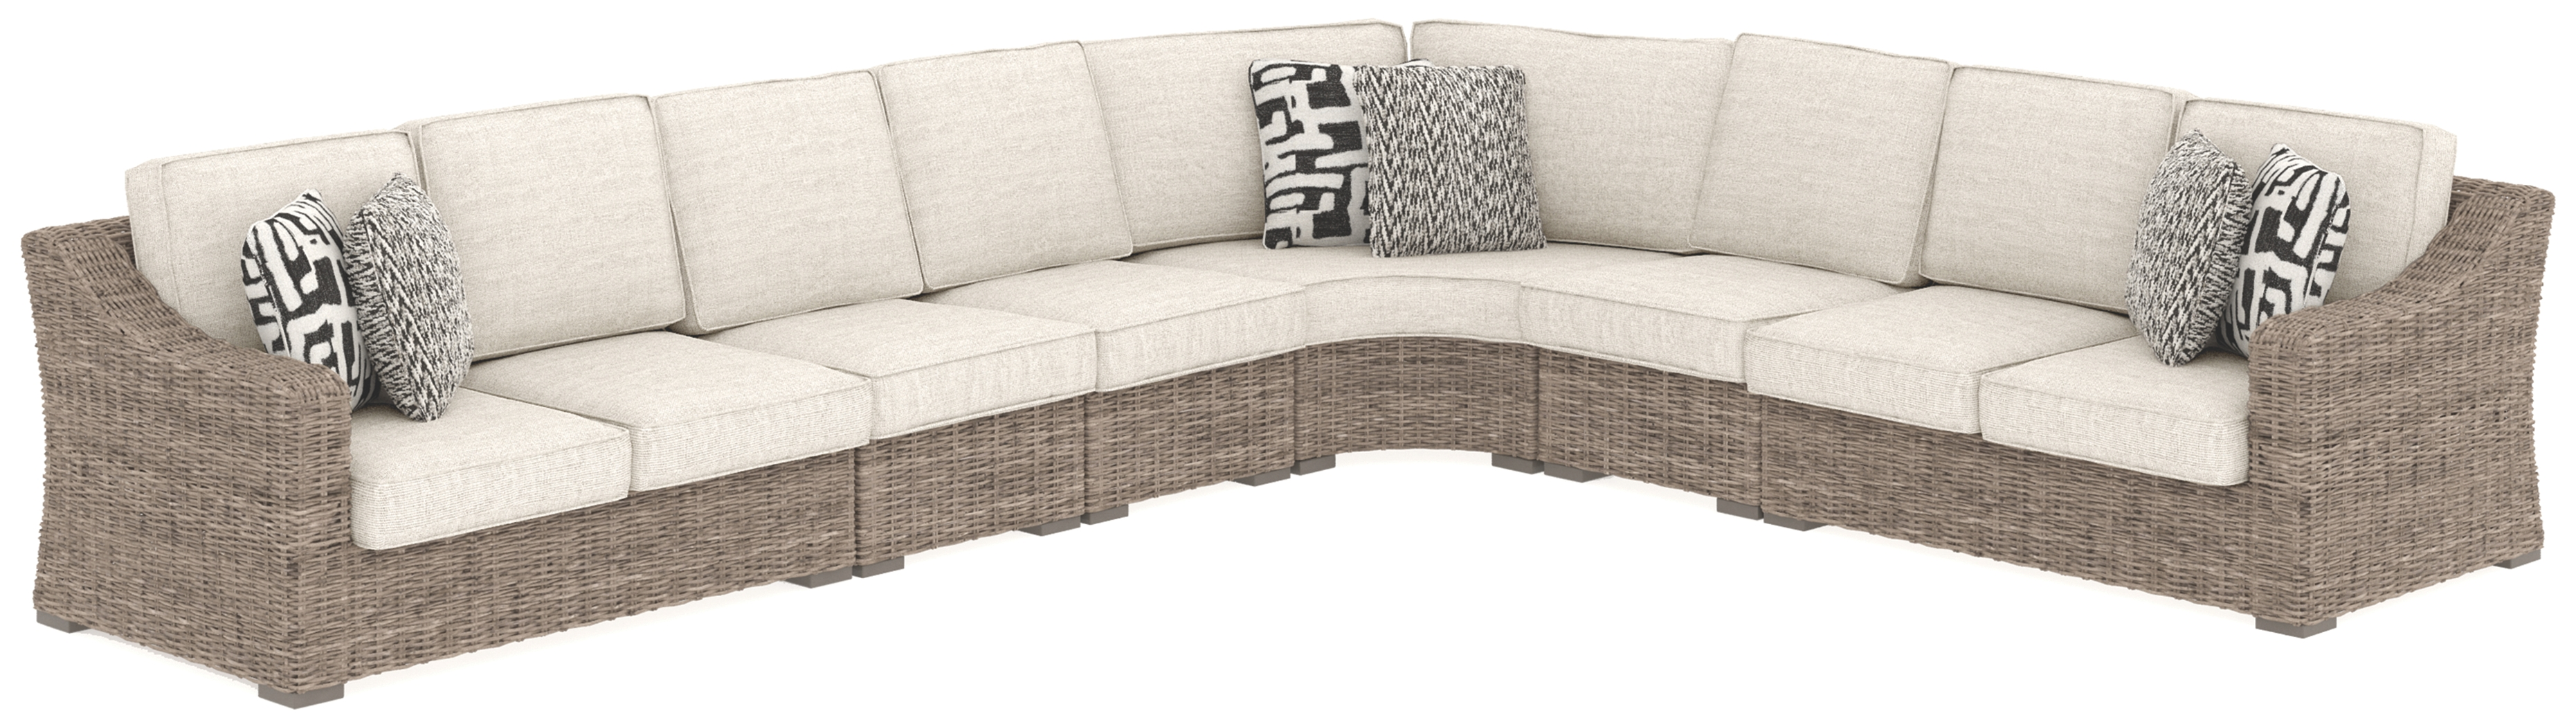 Beachcroft - Beige - 6 Pc. - Sectional Lounge - Furniture ... on Beachcroft Beige Outdoor Living Room Set  id=58743